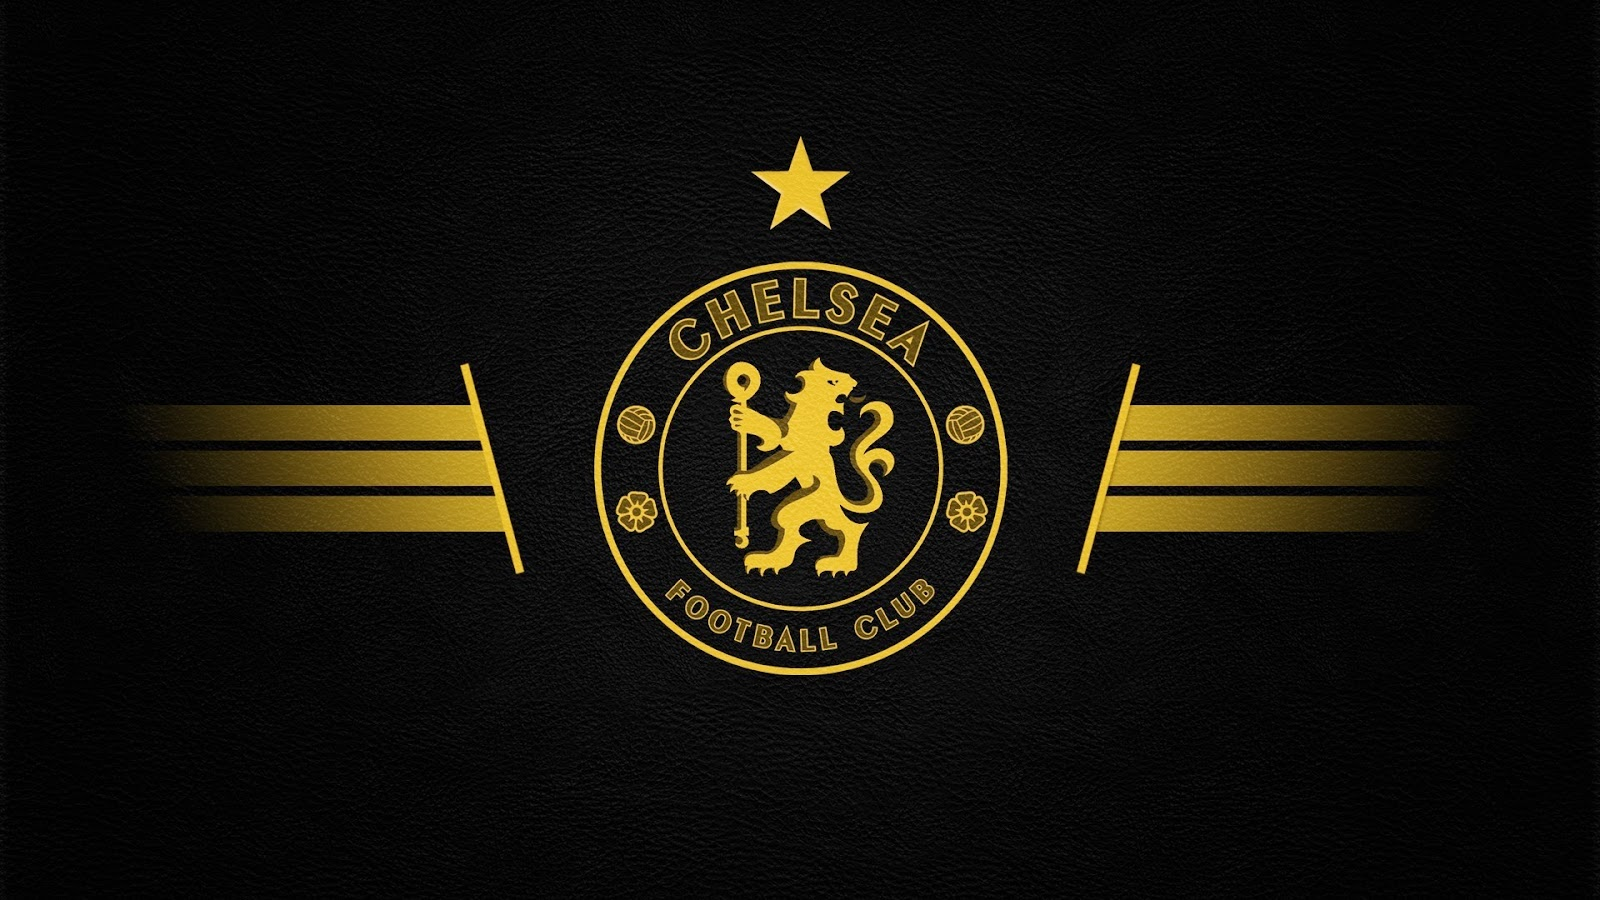 chelsea football club hd wallpapers